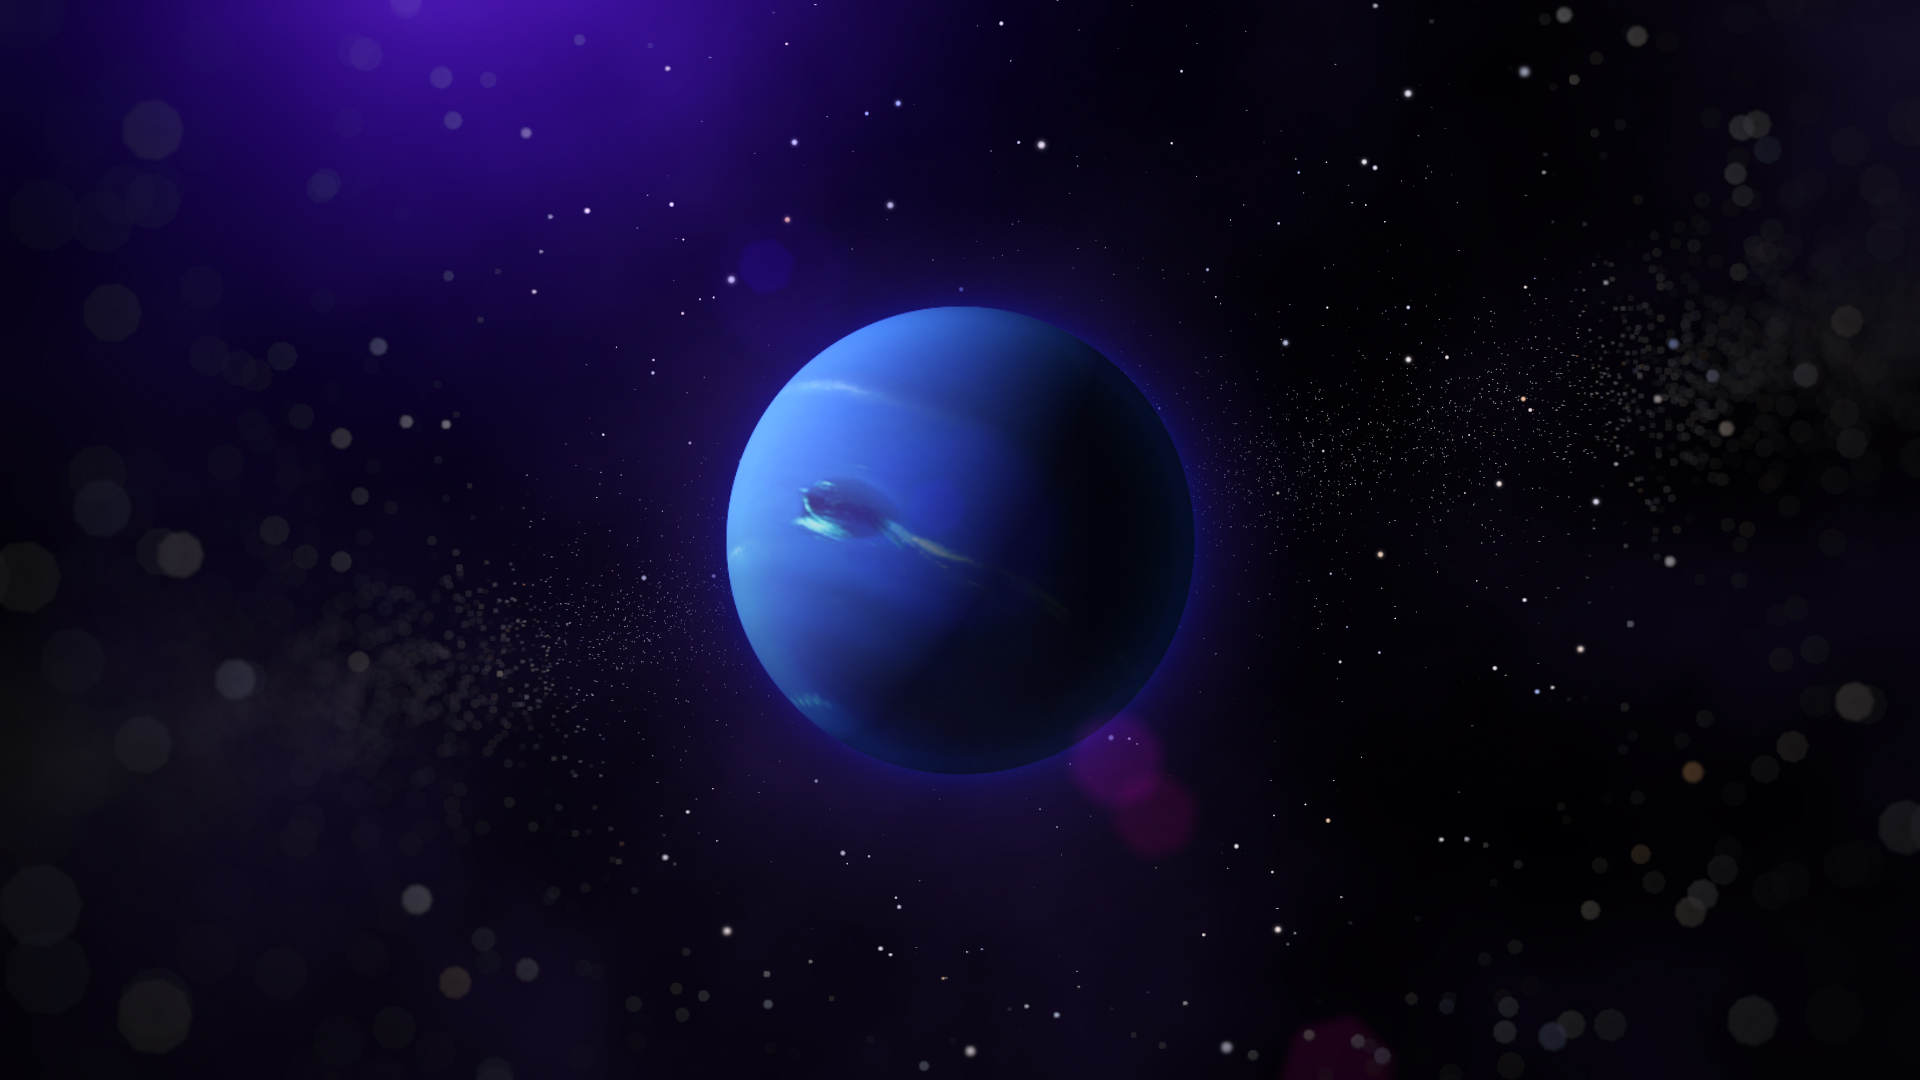 2 HD Neptune Planet Wallpapers 1920x1080